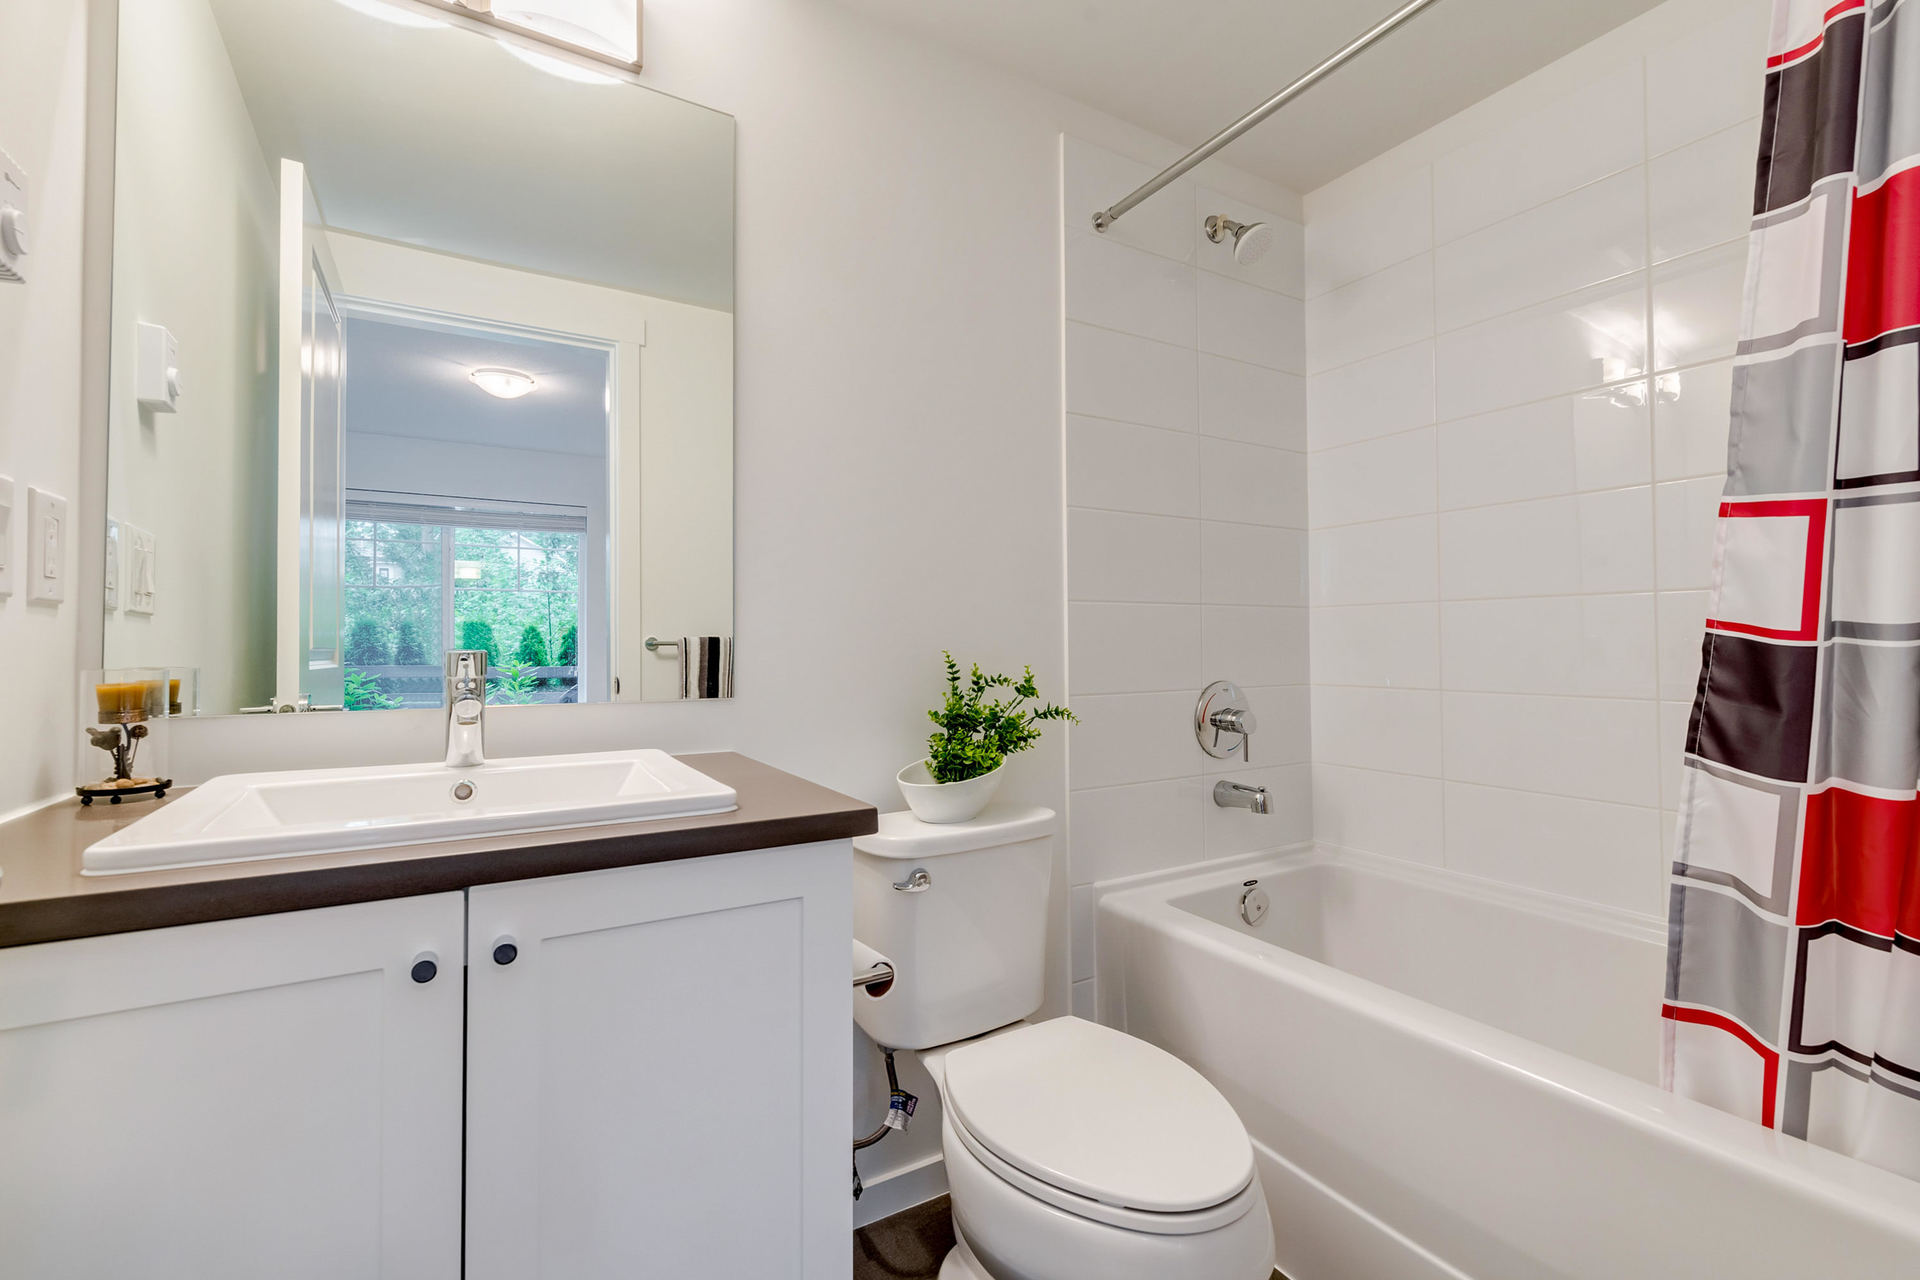 Downstairs En-Suite  at 22 - 127 172 Street, Pacific Douglas, South Surrey White Rock